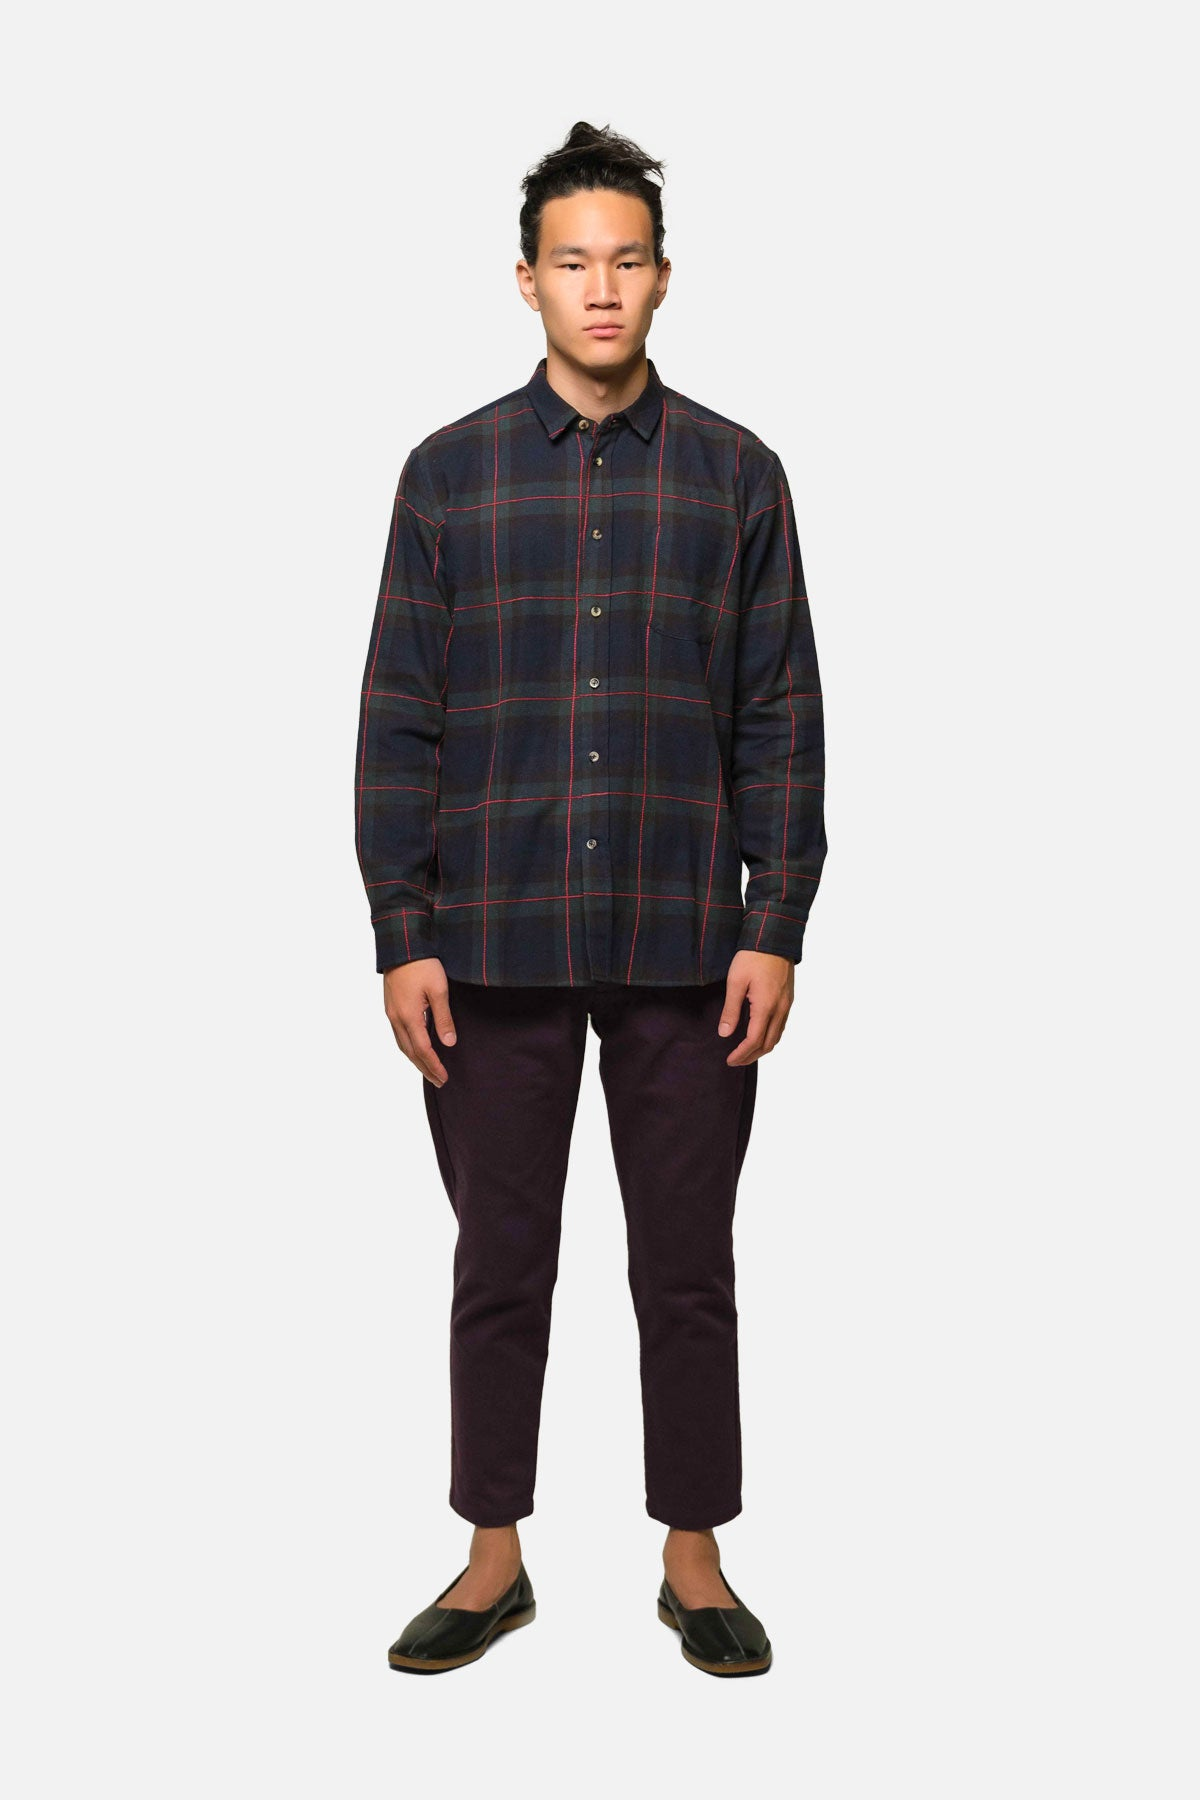 1905 SHIRT IN NAVY WINDOWPANE PLAID - Fortune Goods